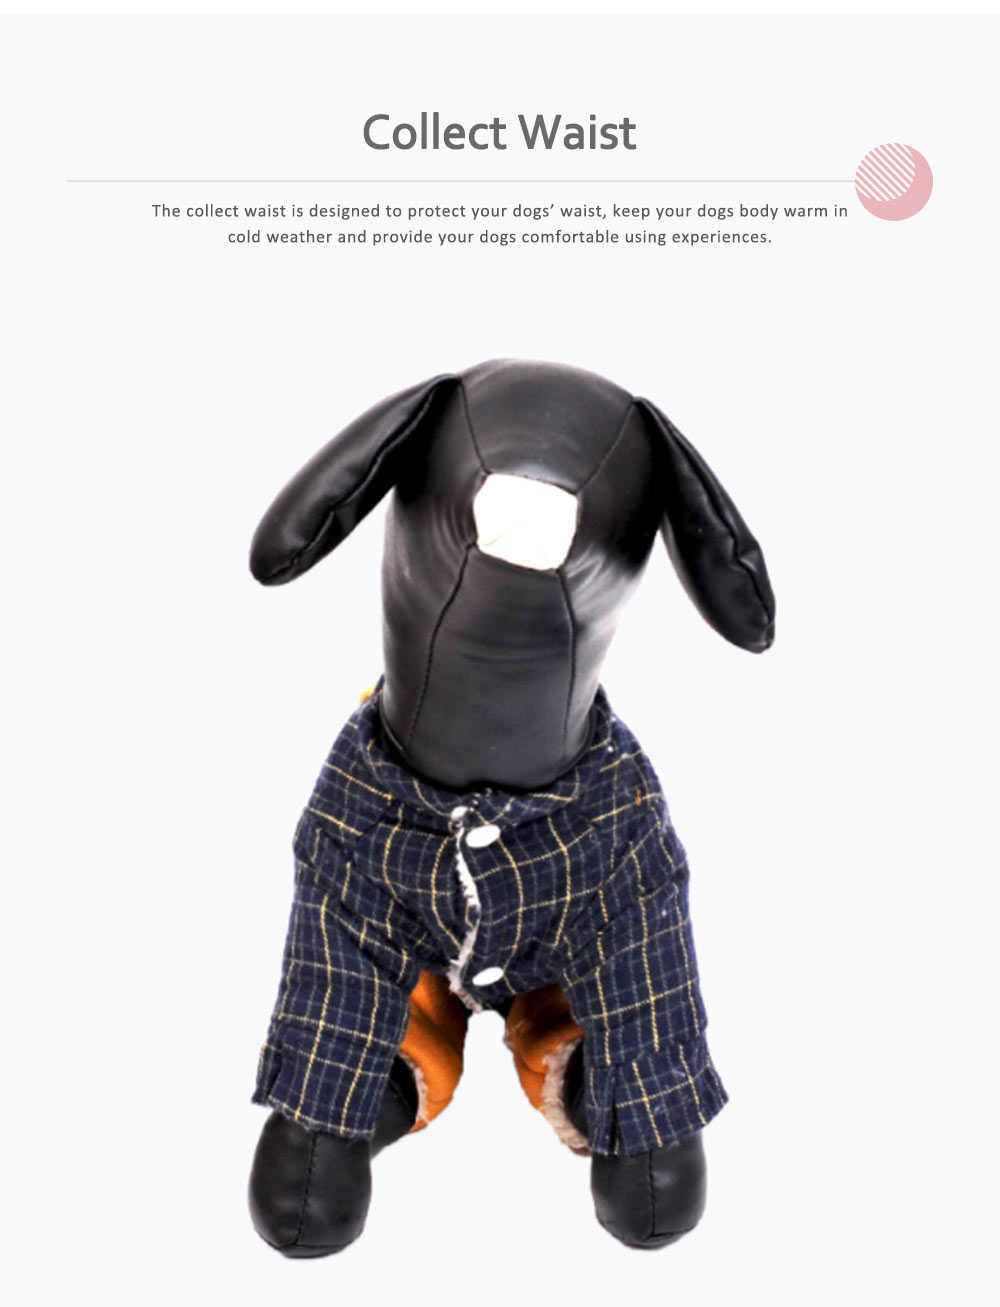 Plaid Overalls Four-leg Pet Clothes, Warm Soft Cotton Puppy Pet Coat Apparel for All Breeds 4